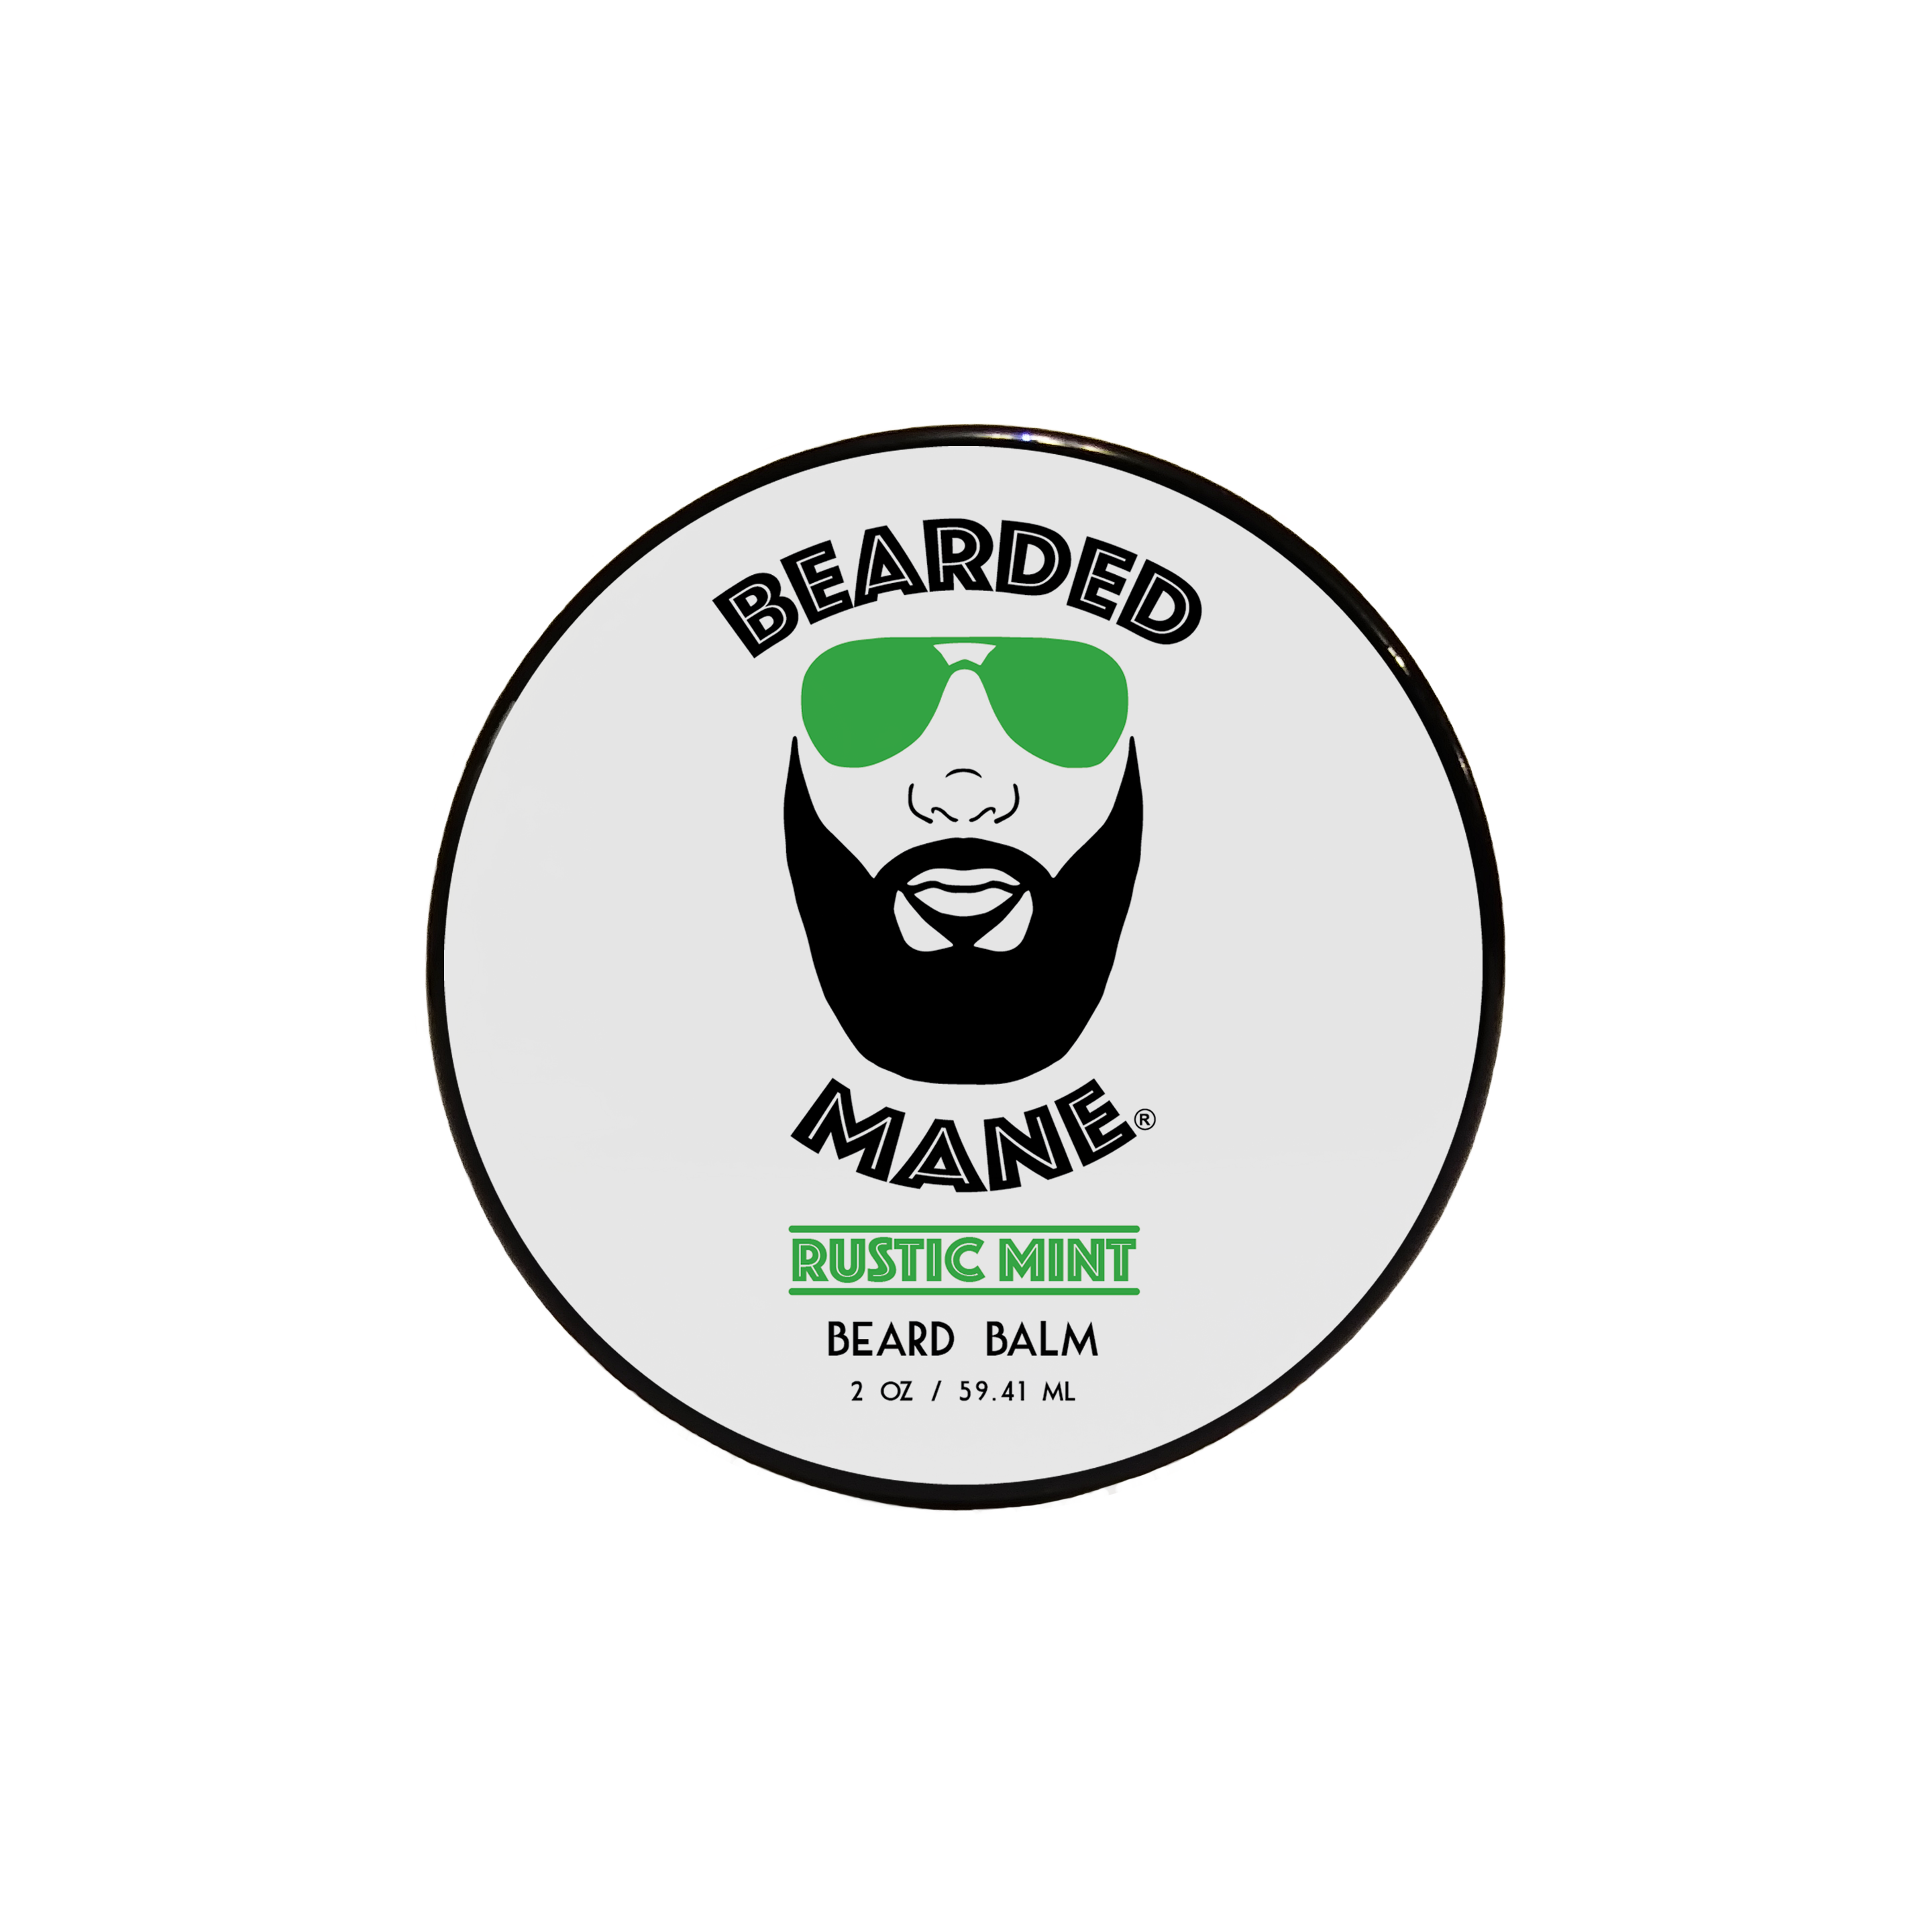 Bearded Mane Rustic Mint Beard Balm Top View